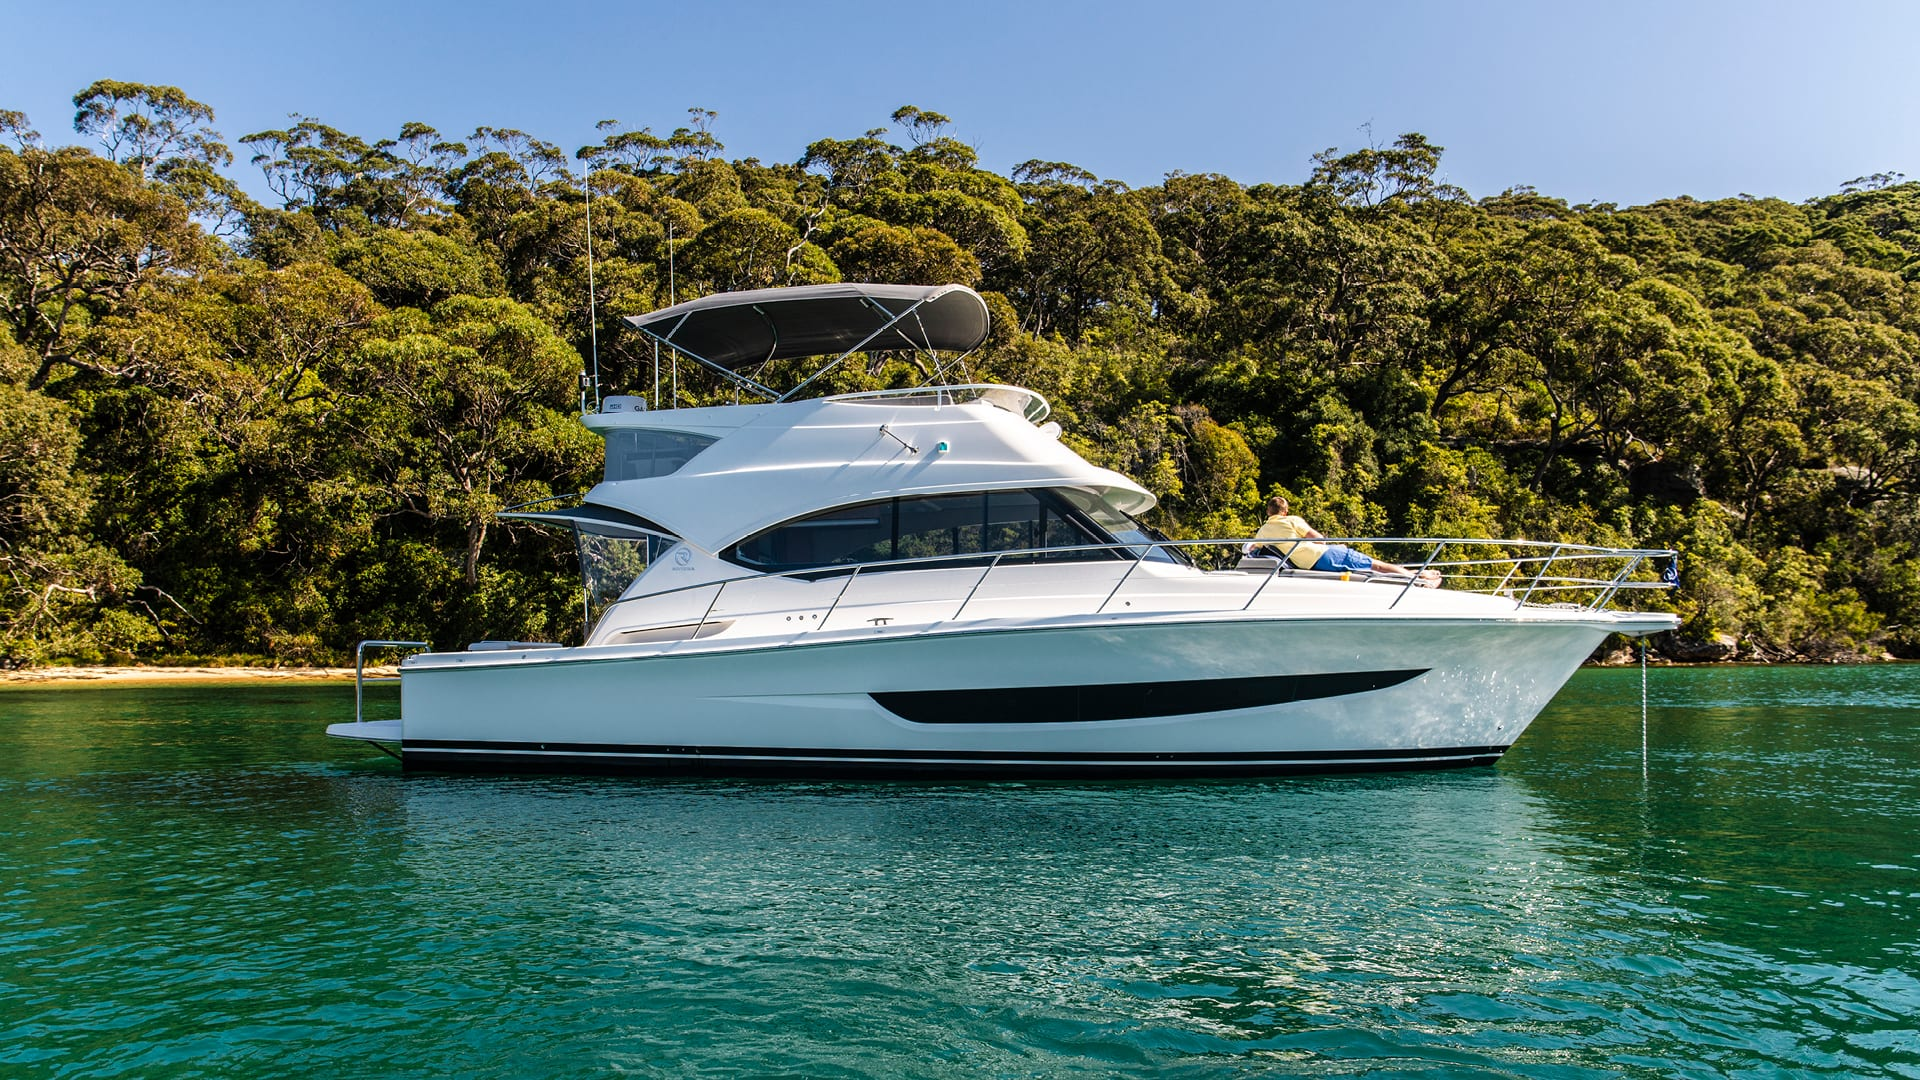 Riviera 39 Sports Motor Yacht Anchored 02